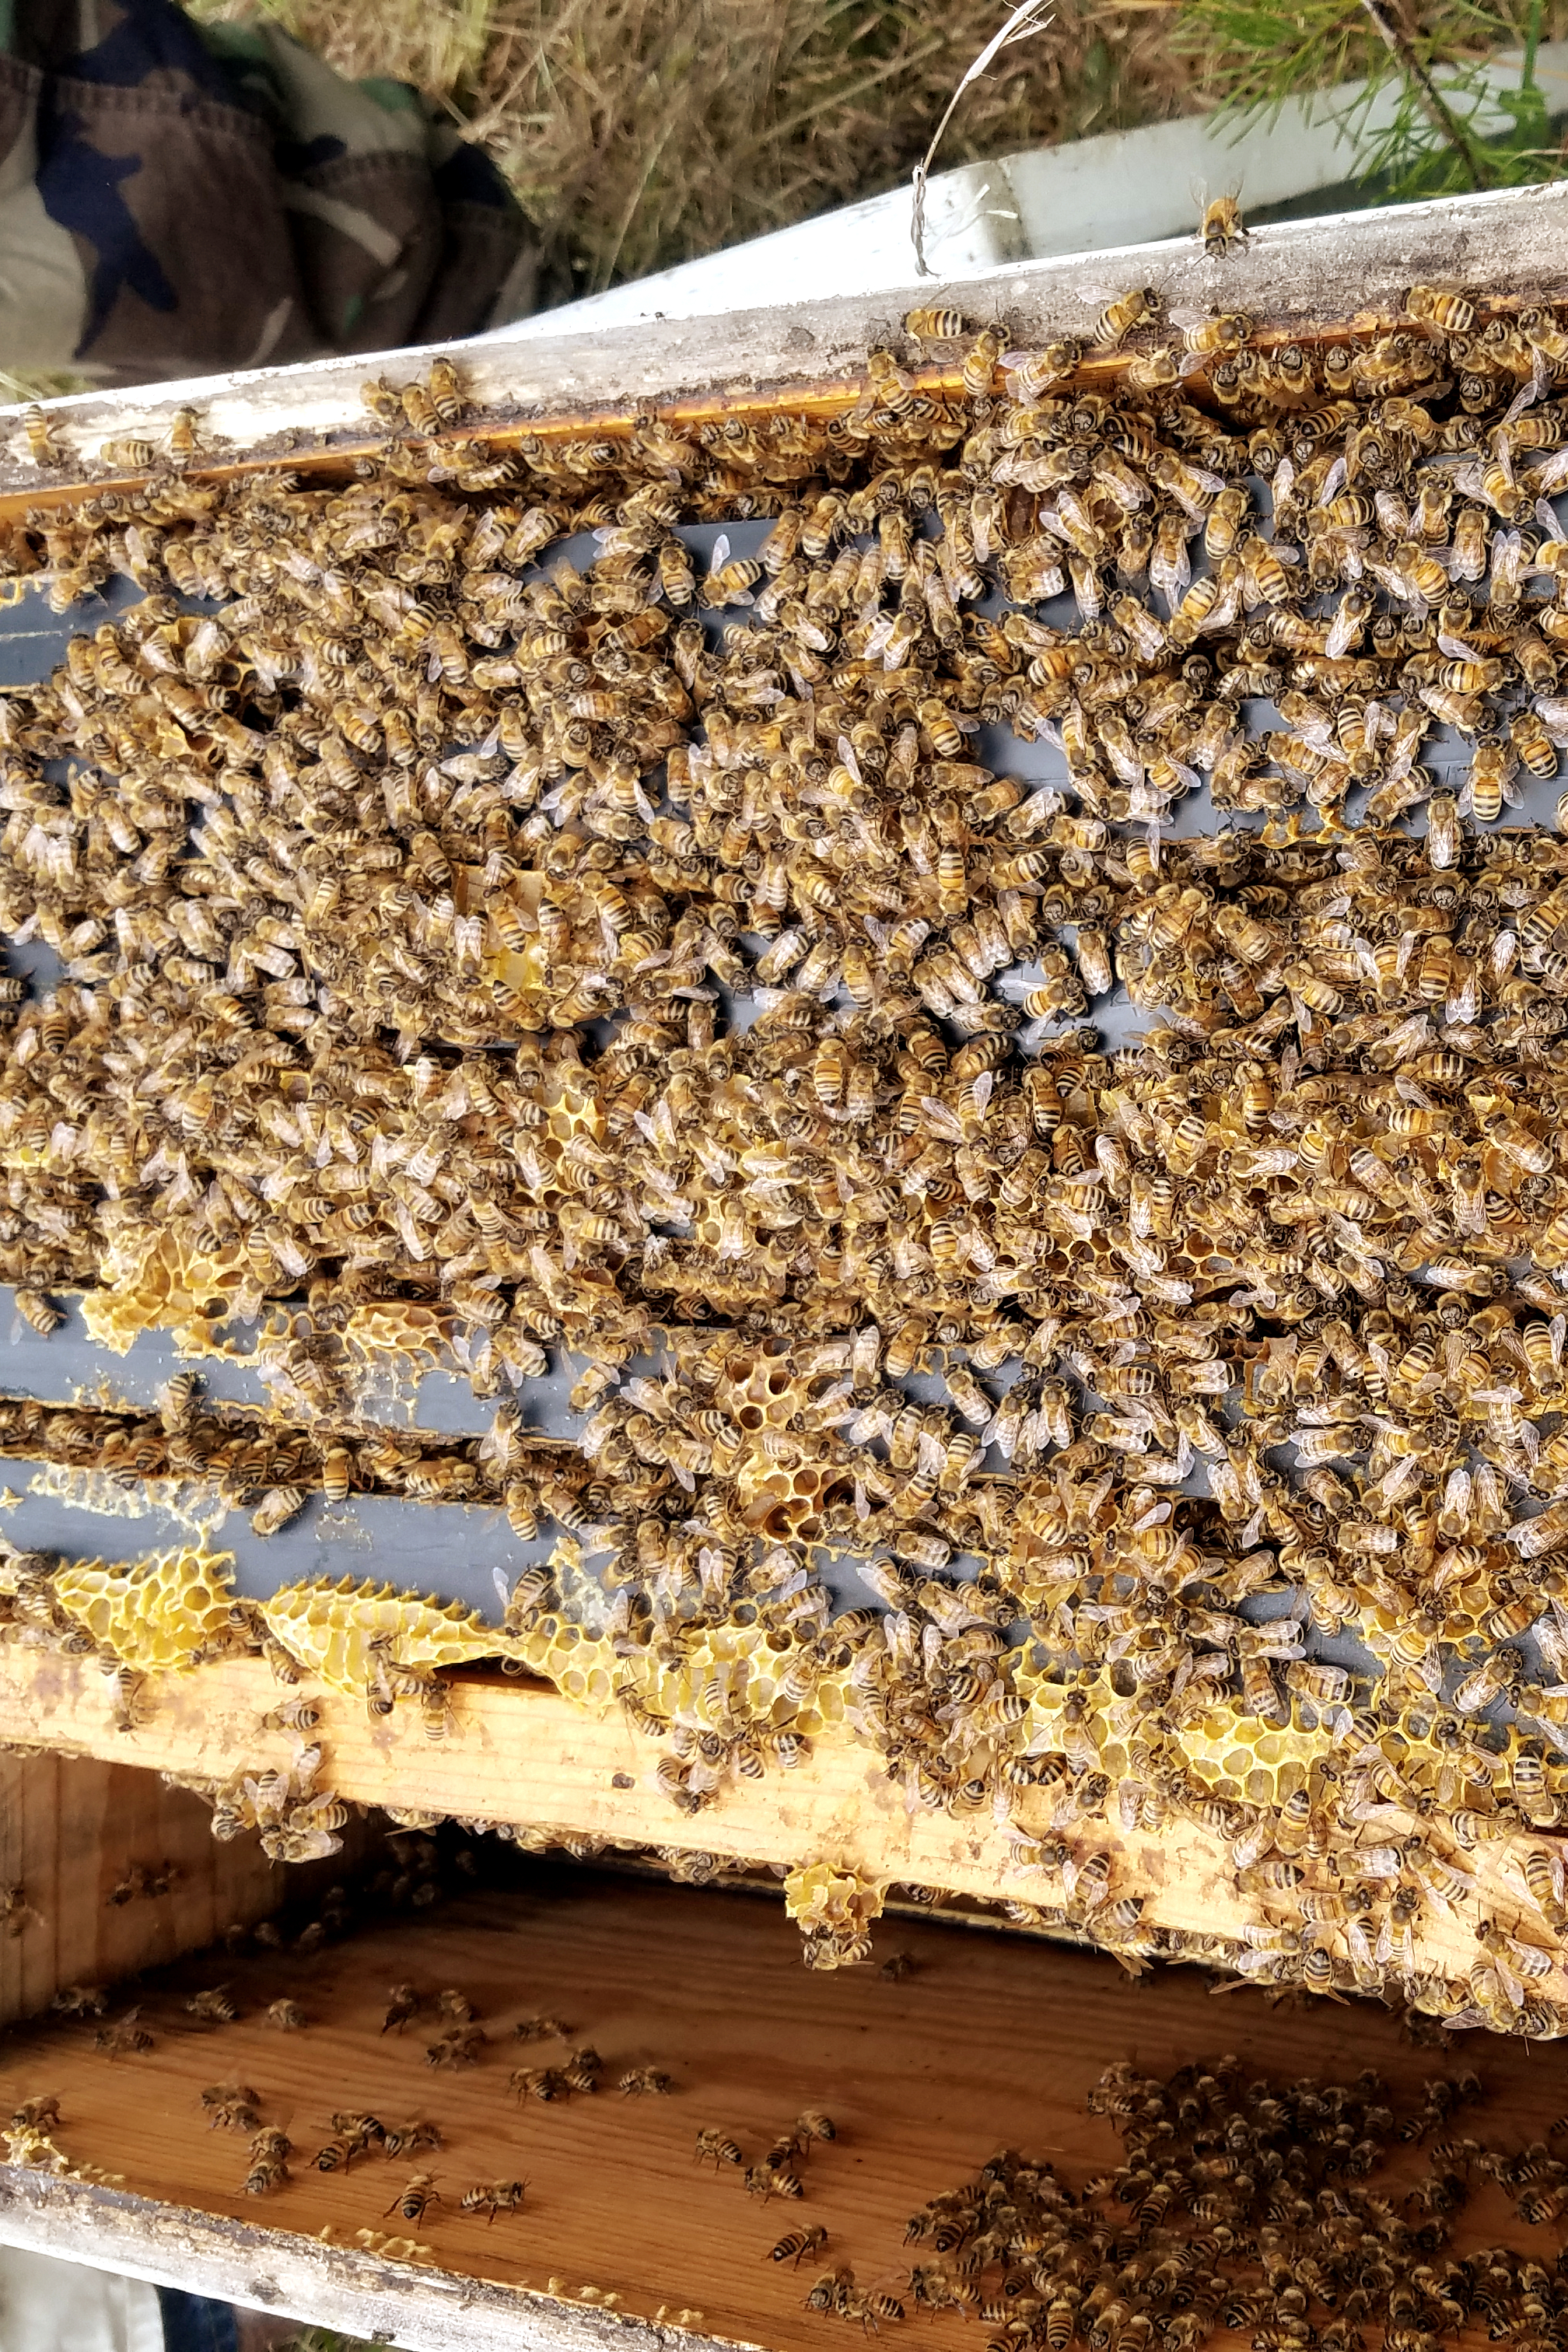 Looking inside a bee hive